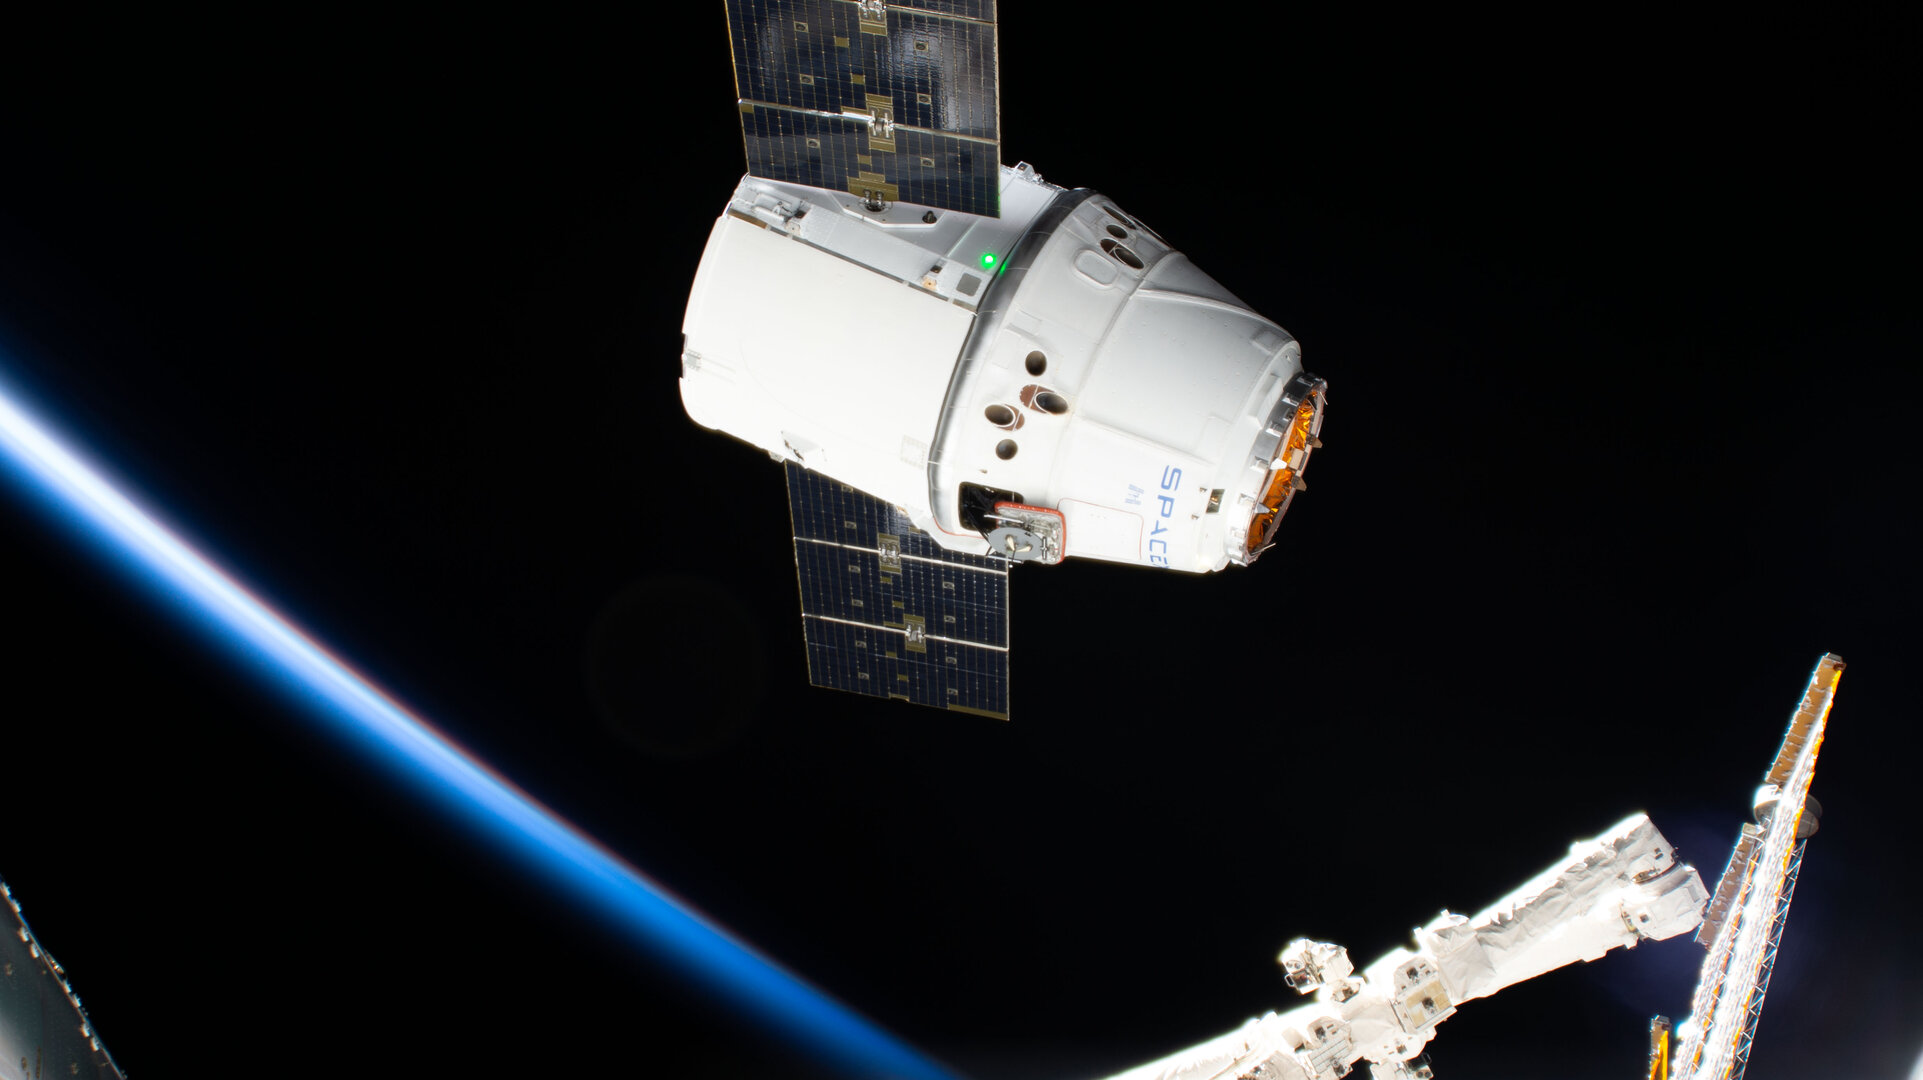 Dragon arriving at Space Station